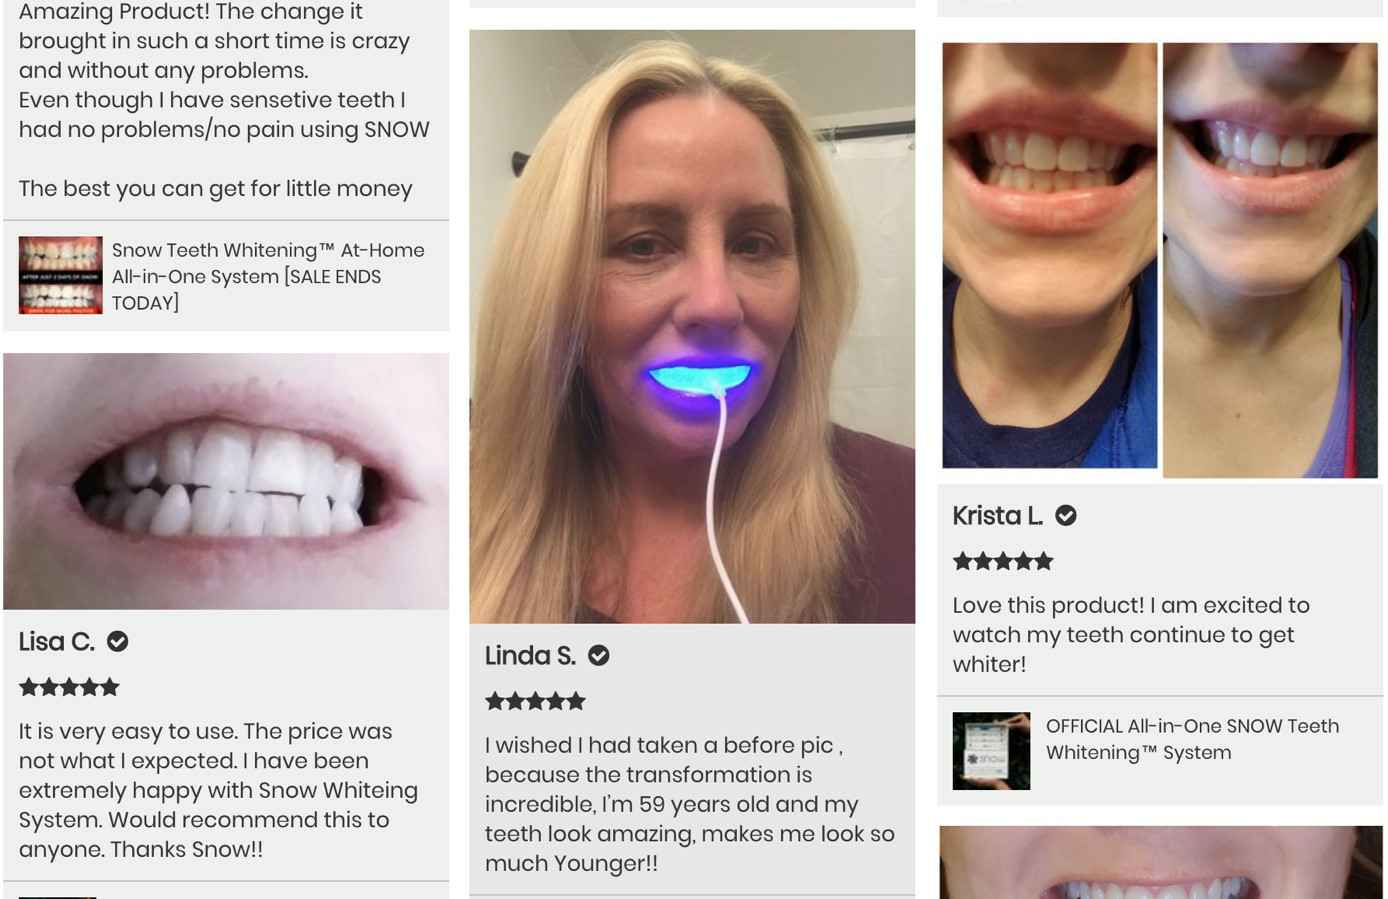 Snow Teeth Whitening Kit Outlet Deals